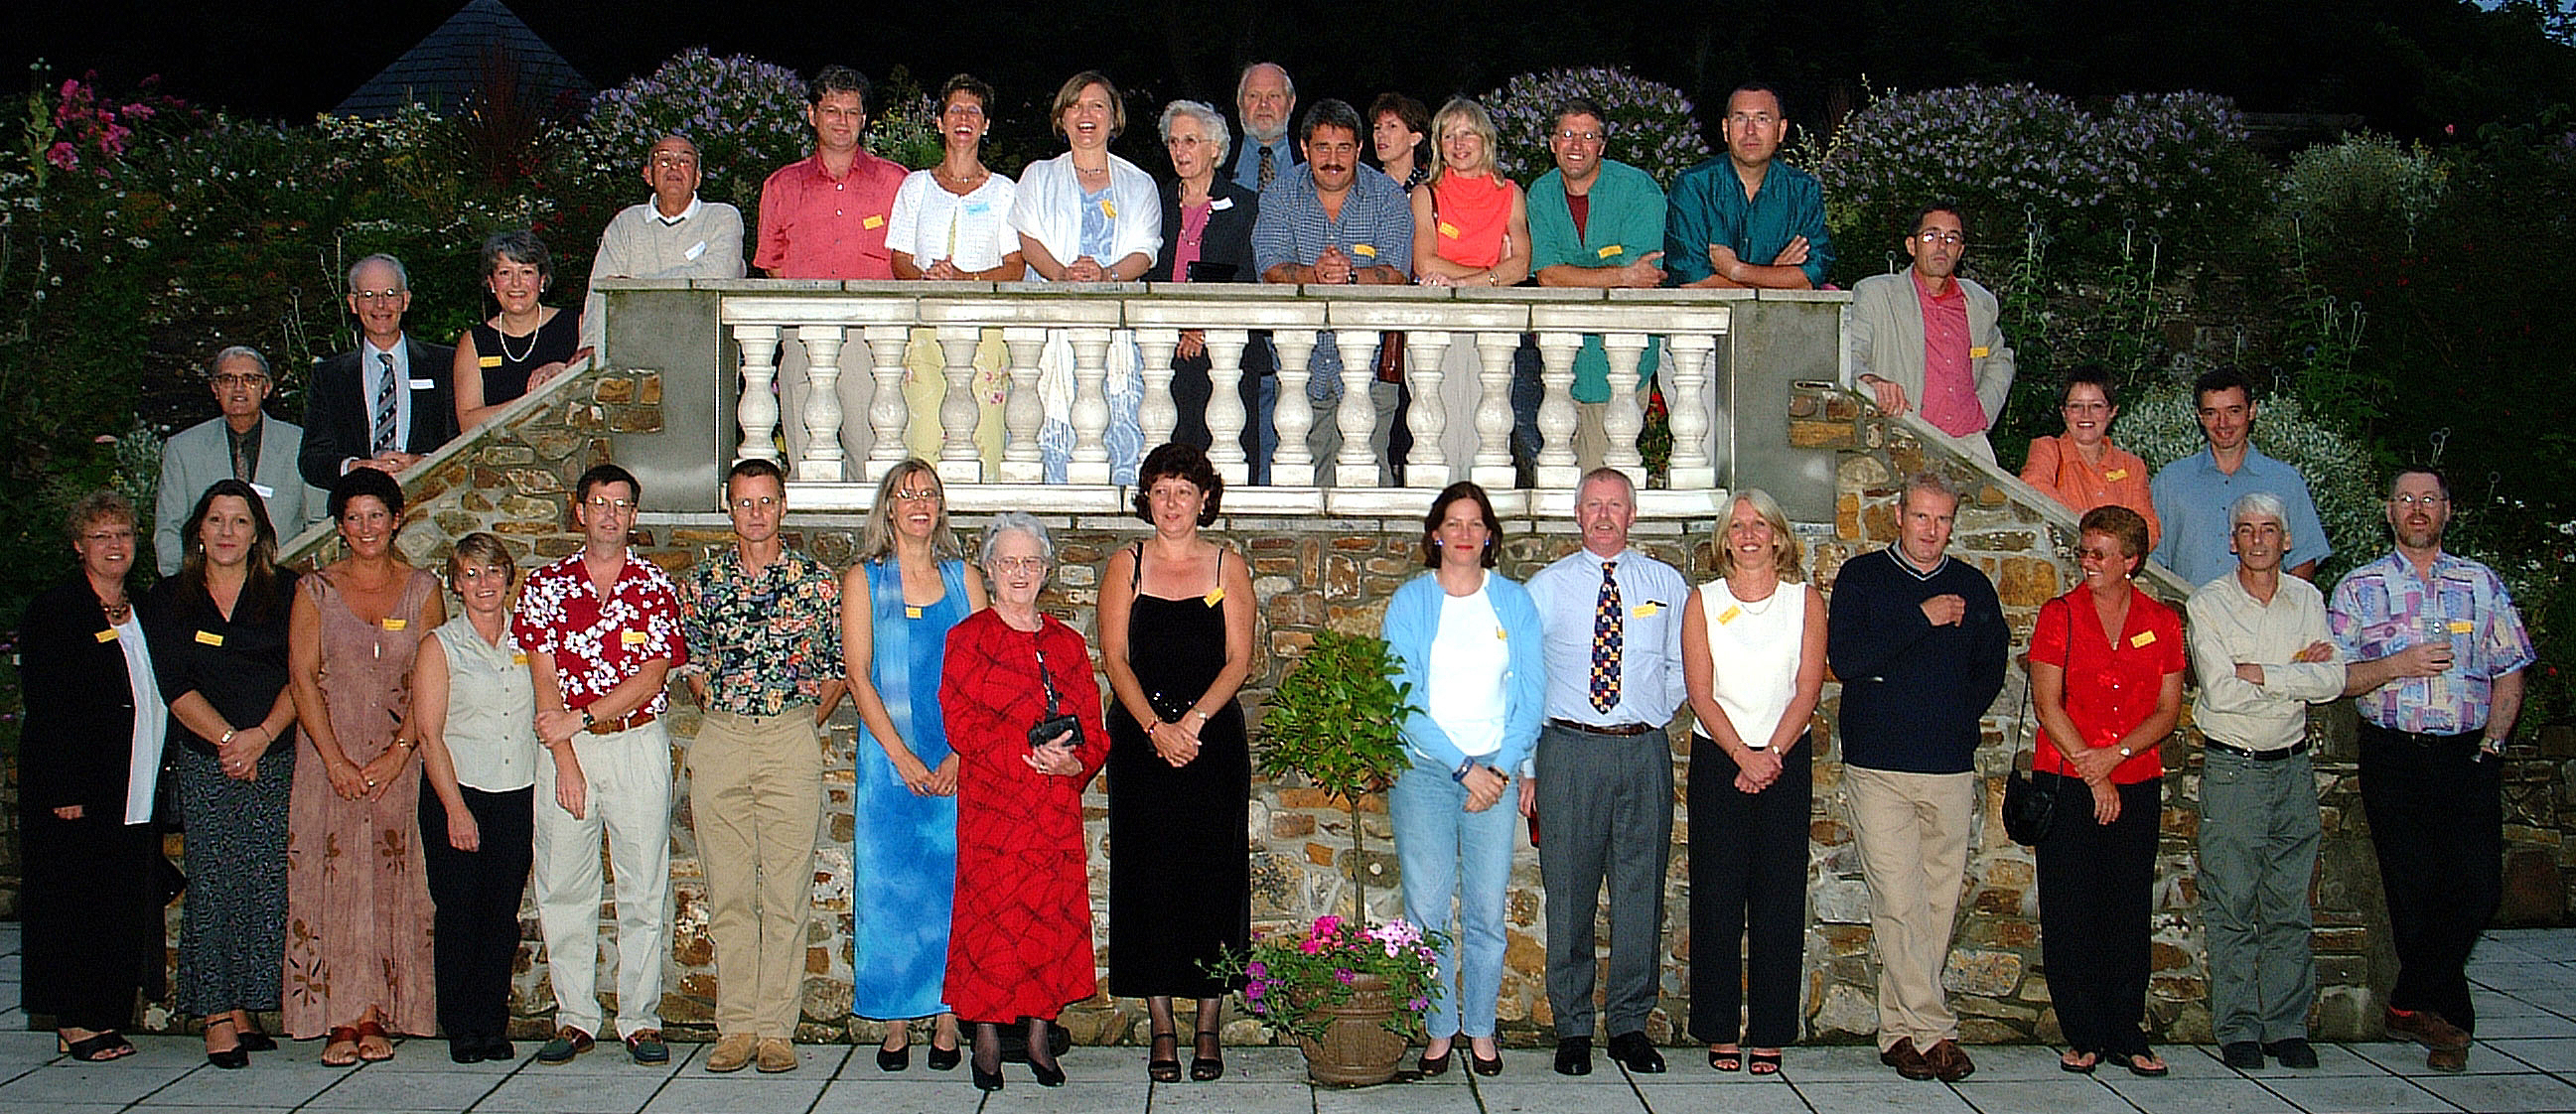 2001 Reunion of the class of 1967-71